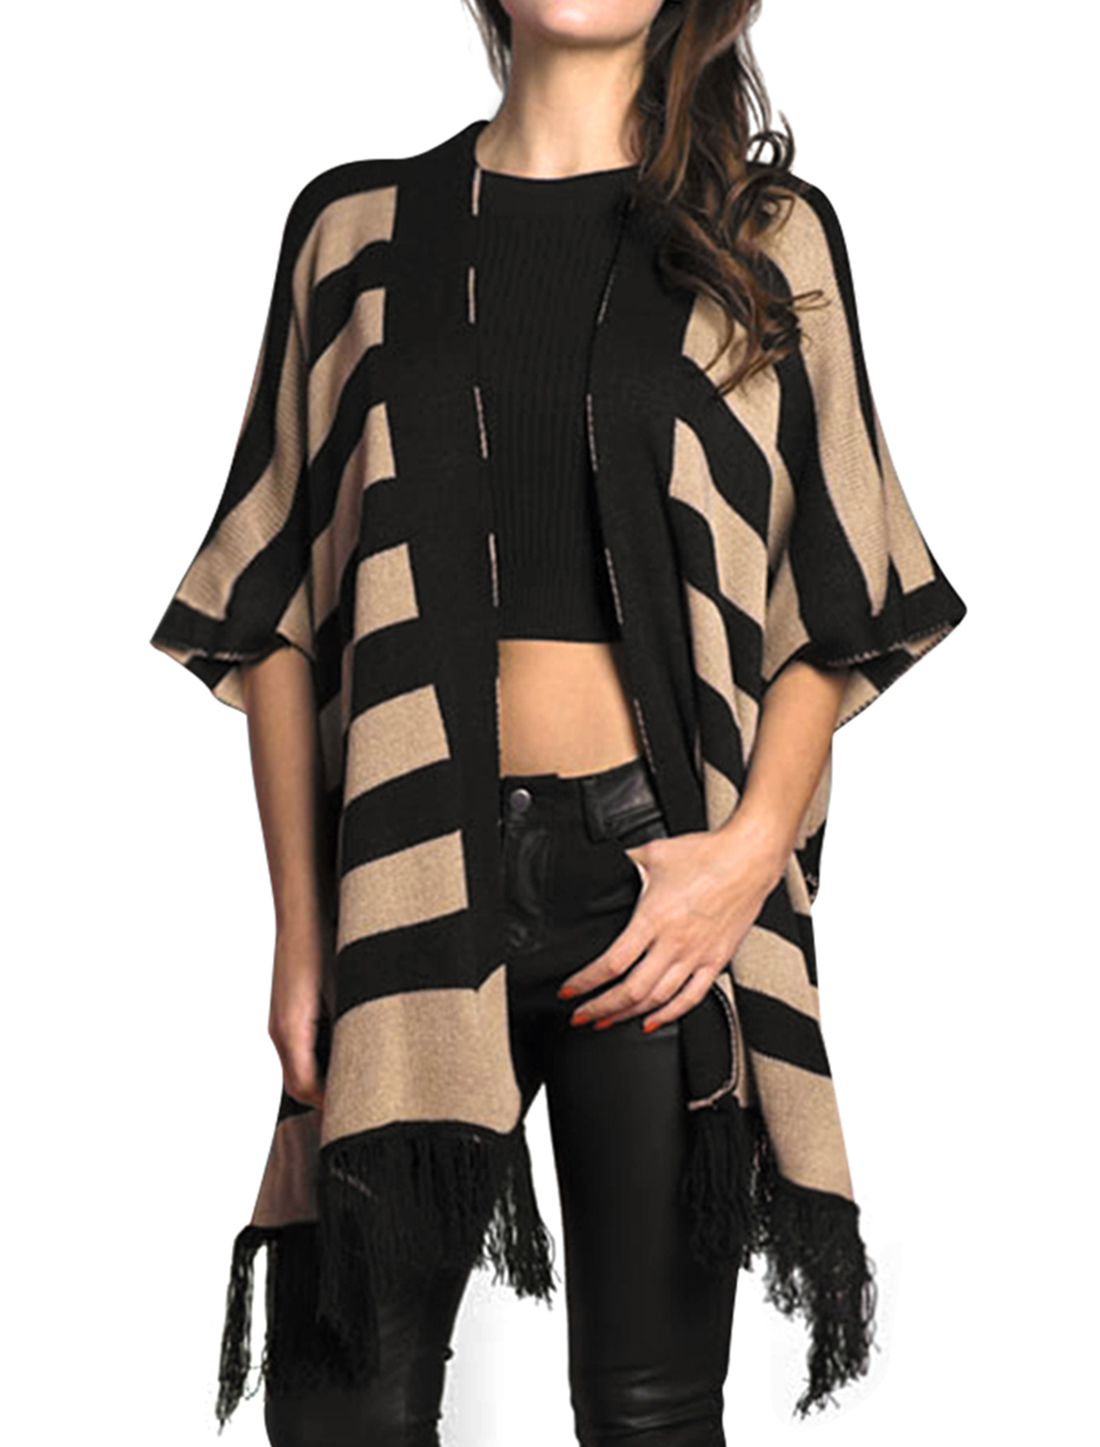 Allegra K Woman Horizontal Stripes Fringed Sweater Poncho Cardigan Black L